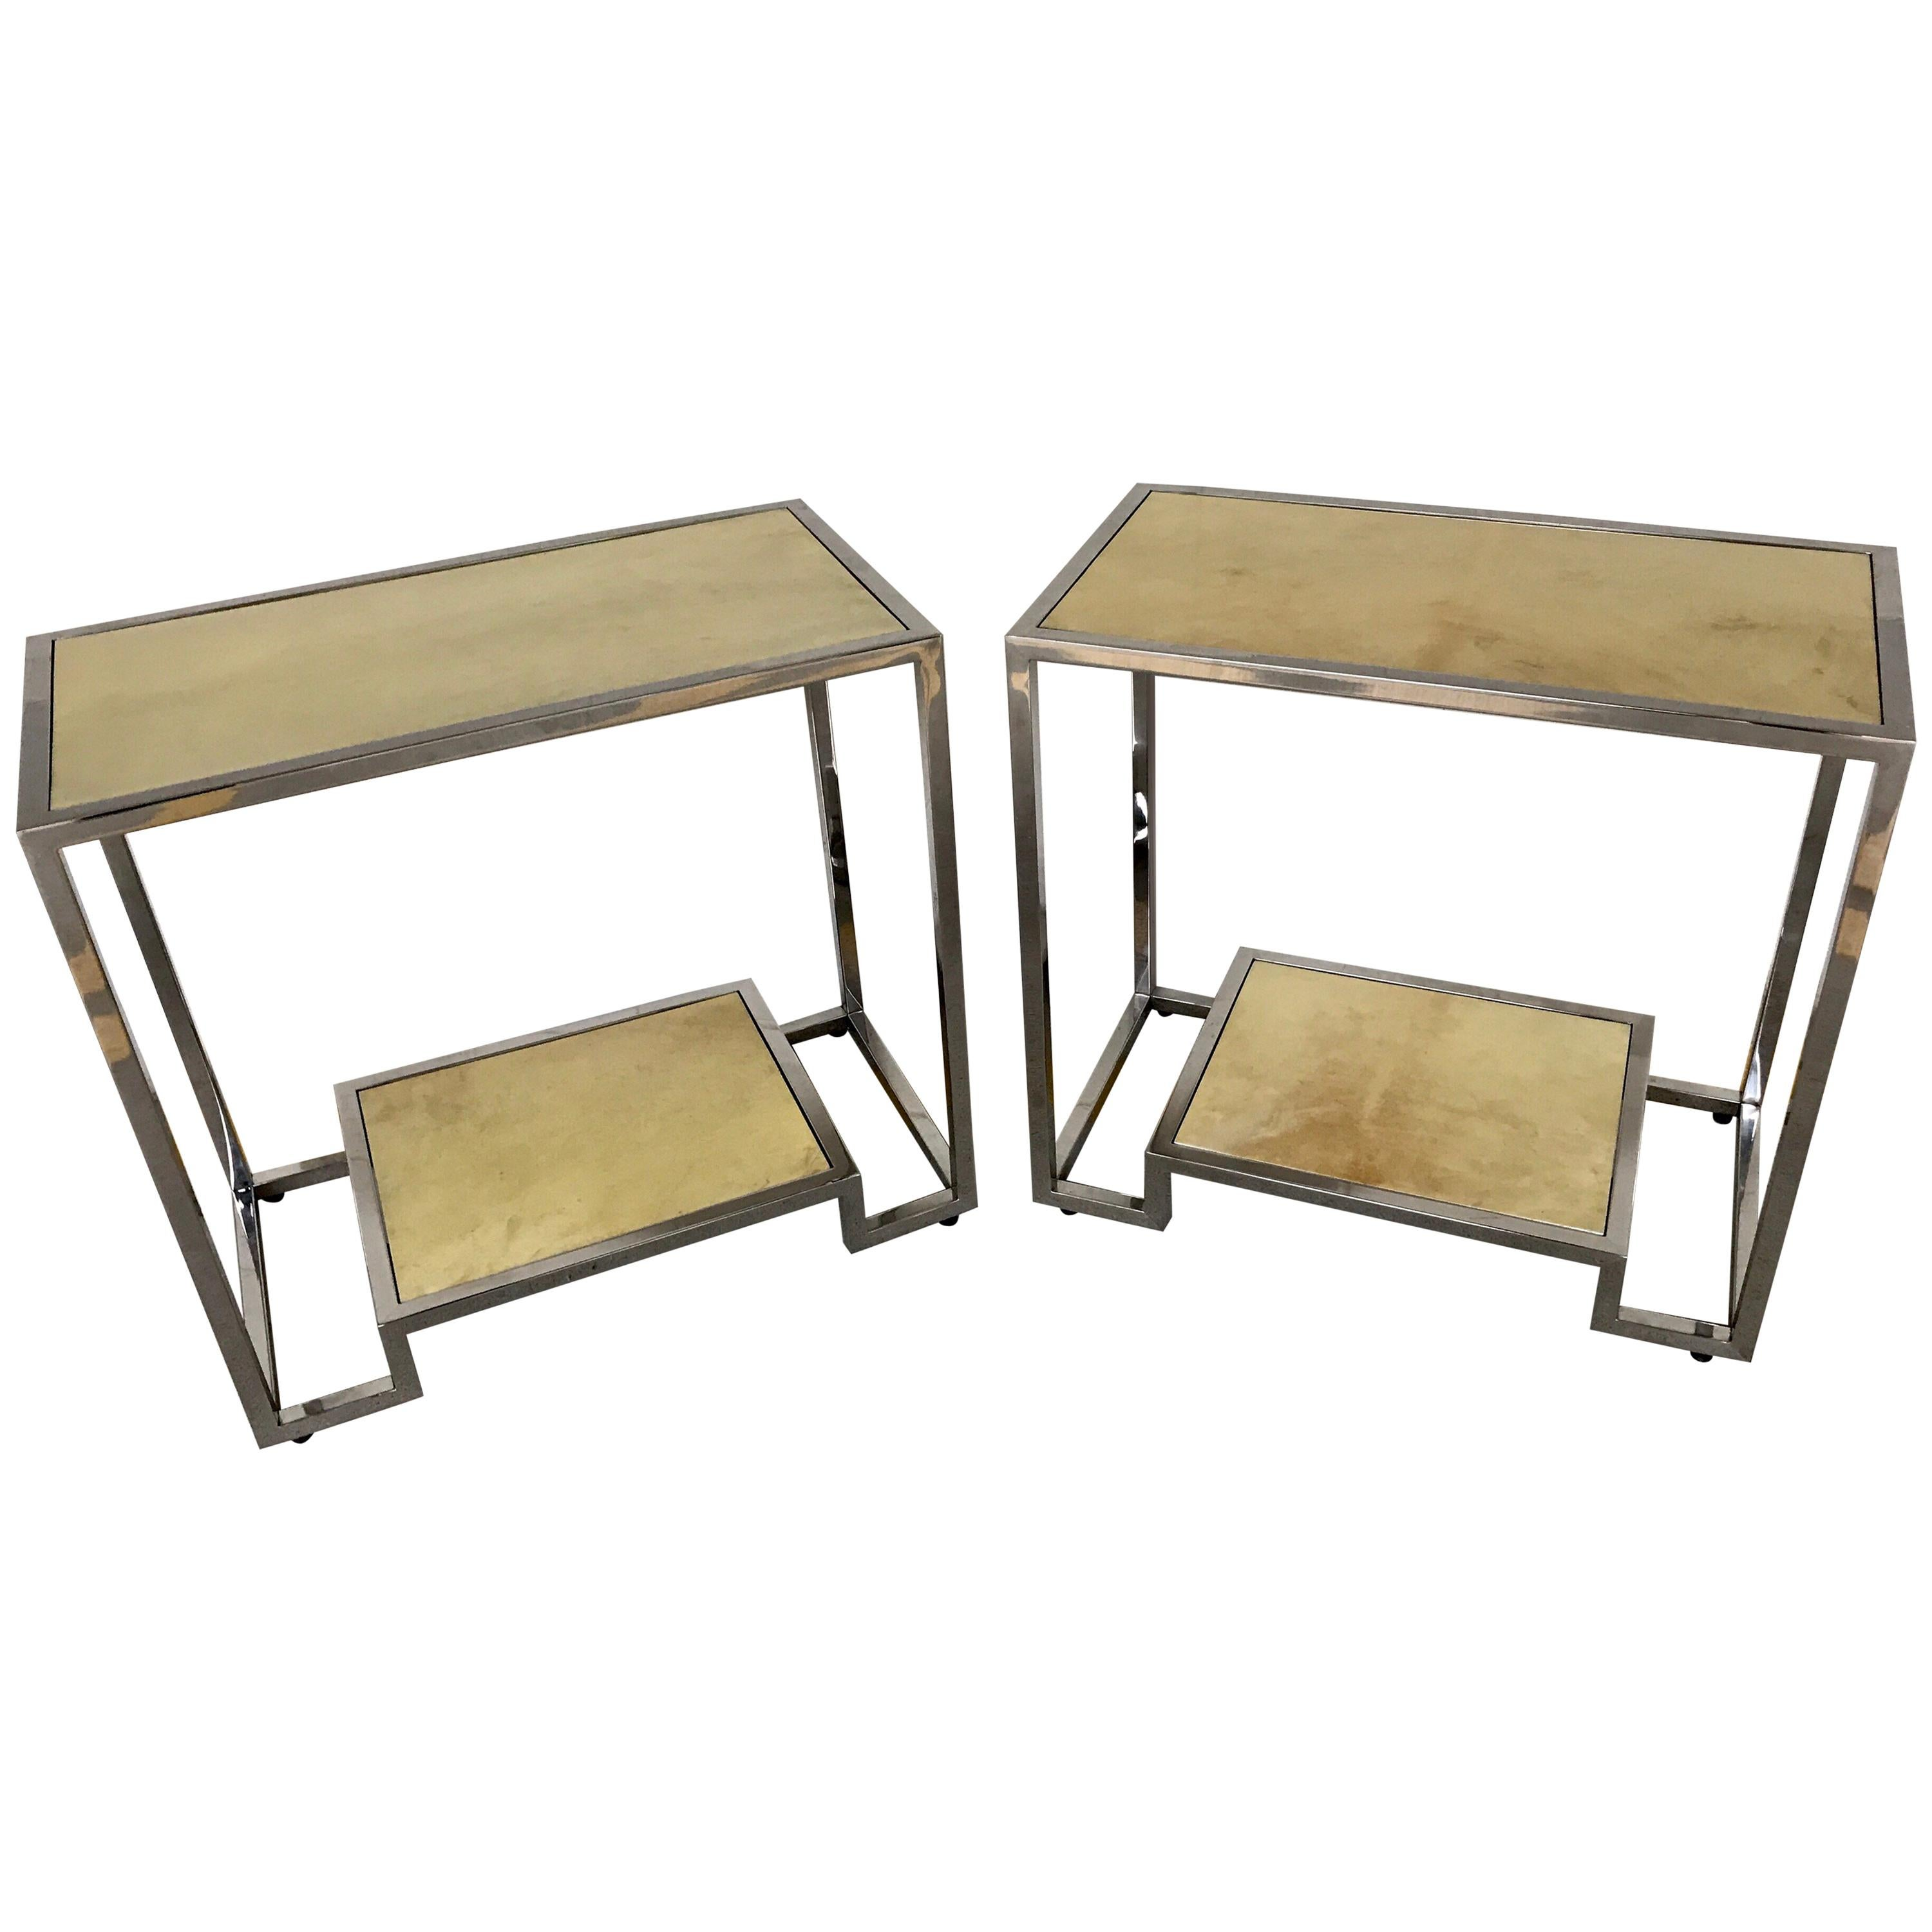 Pair of Modern Chrome and Parchment Two-Tier Side Tables